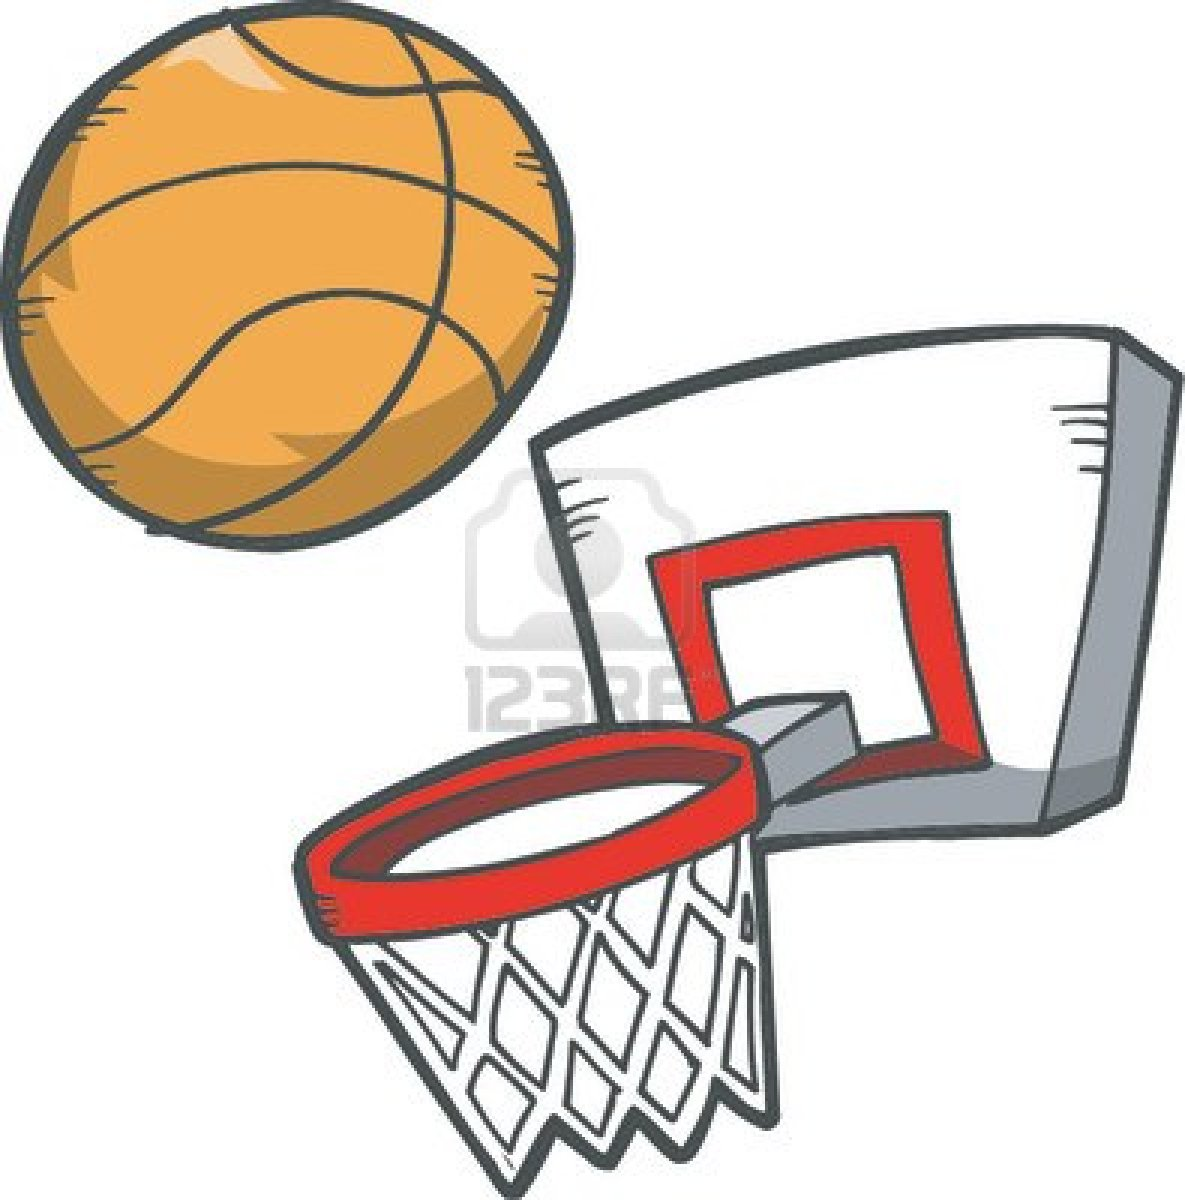 1185x1200 Clipart Basketball Hoop